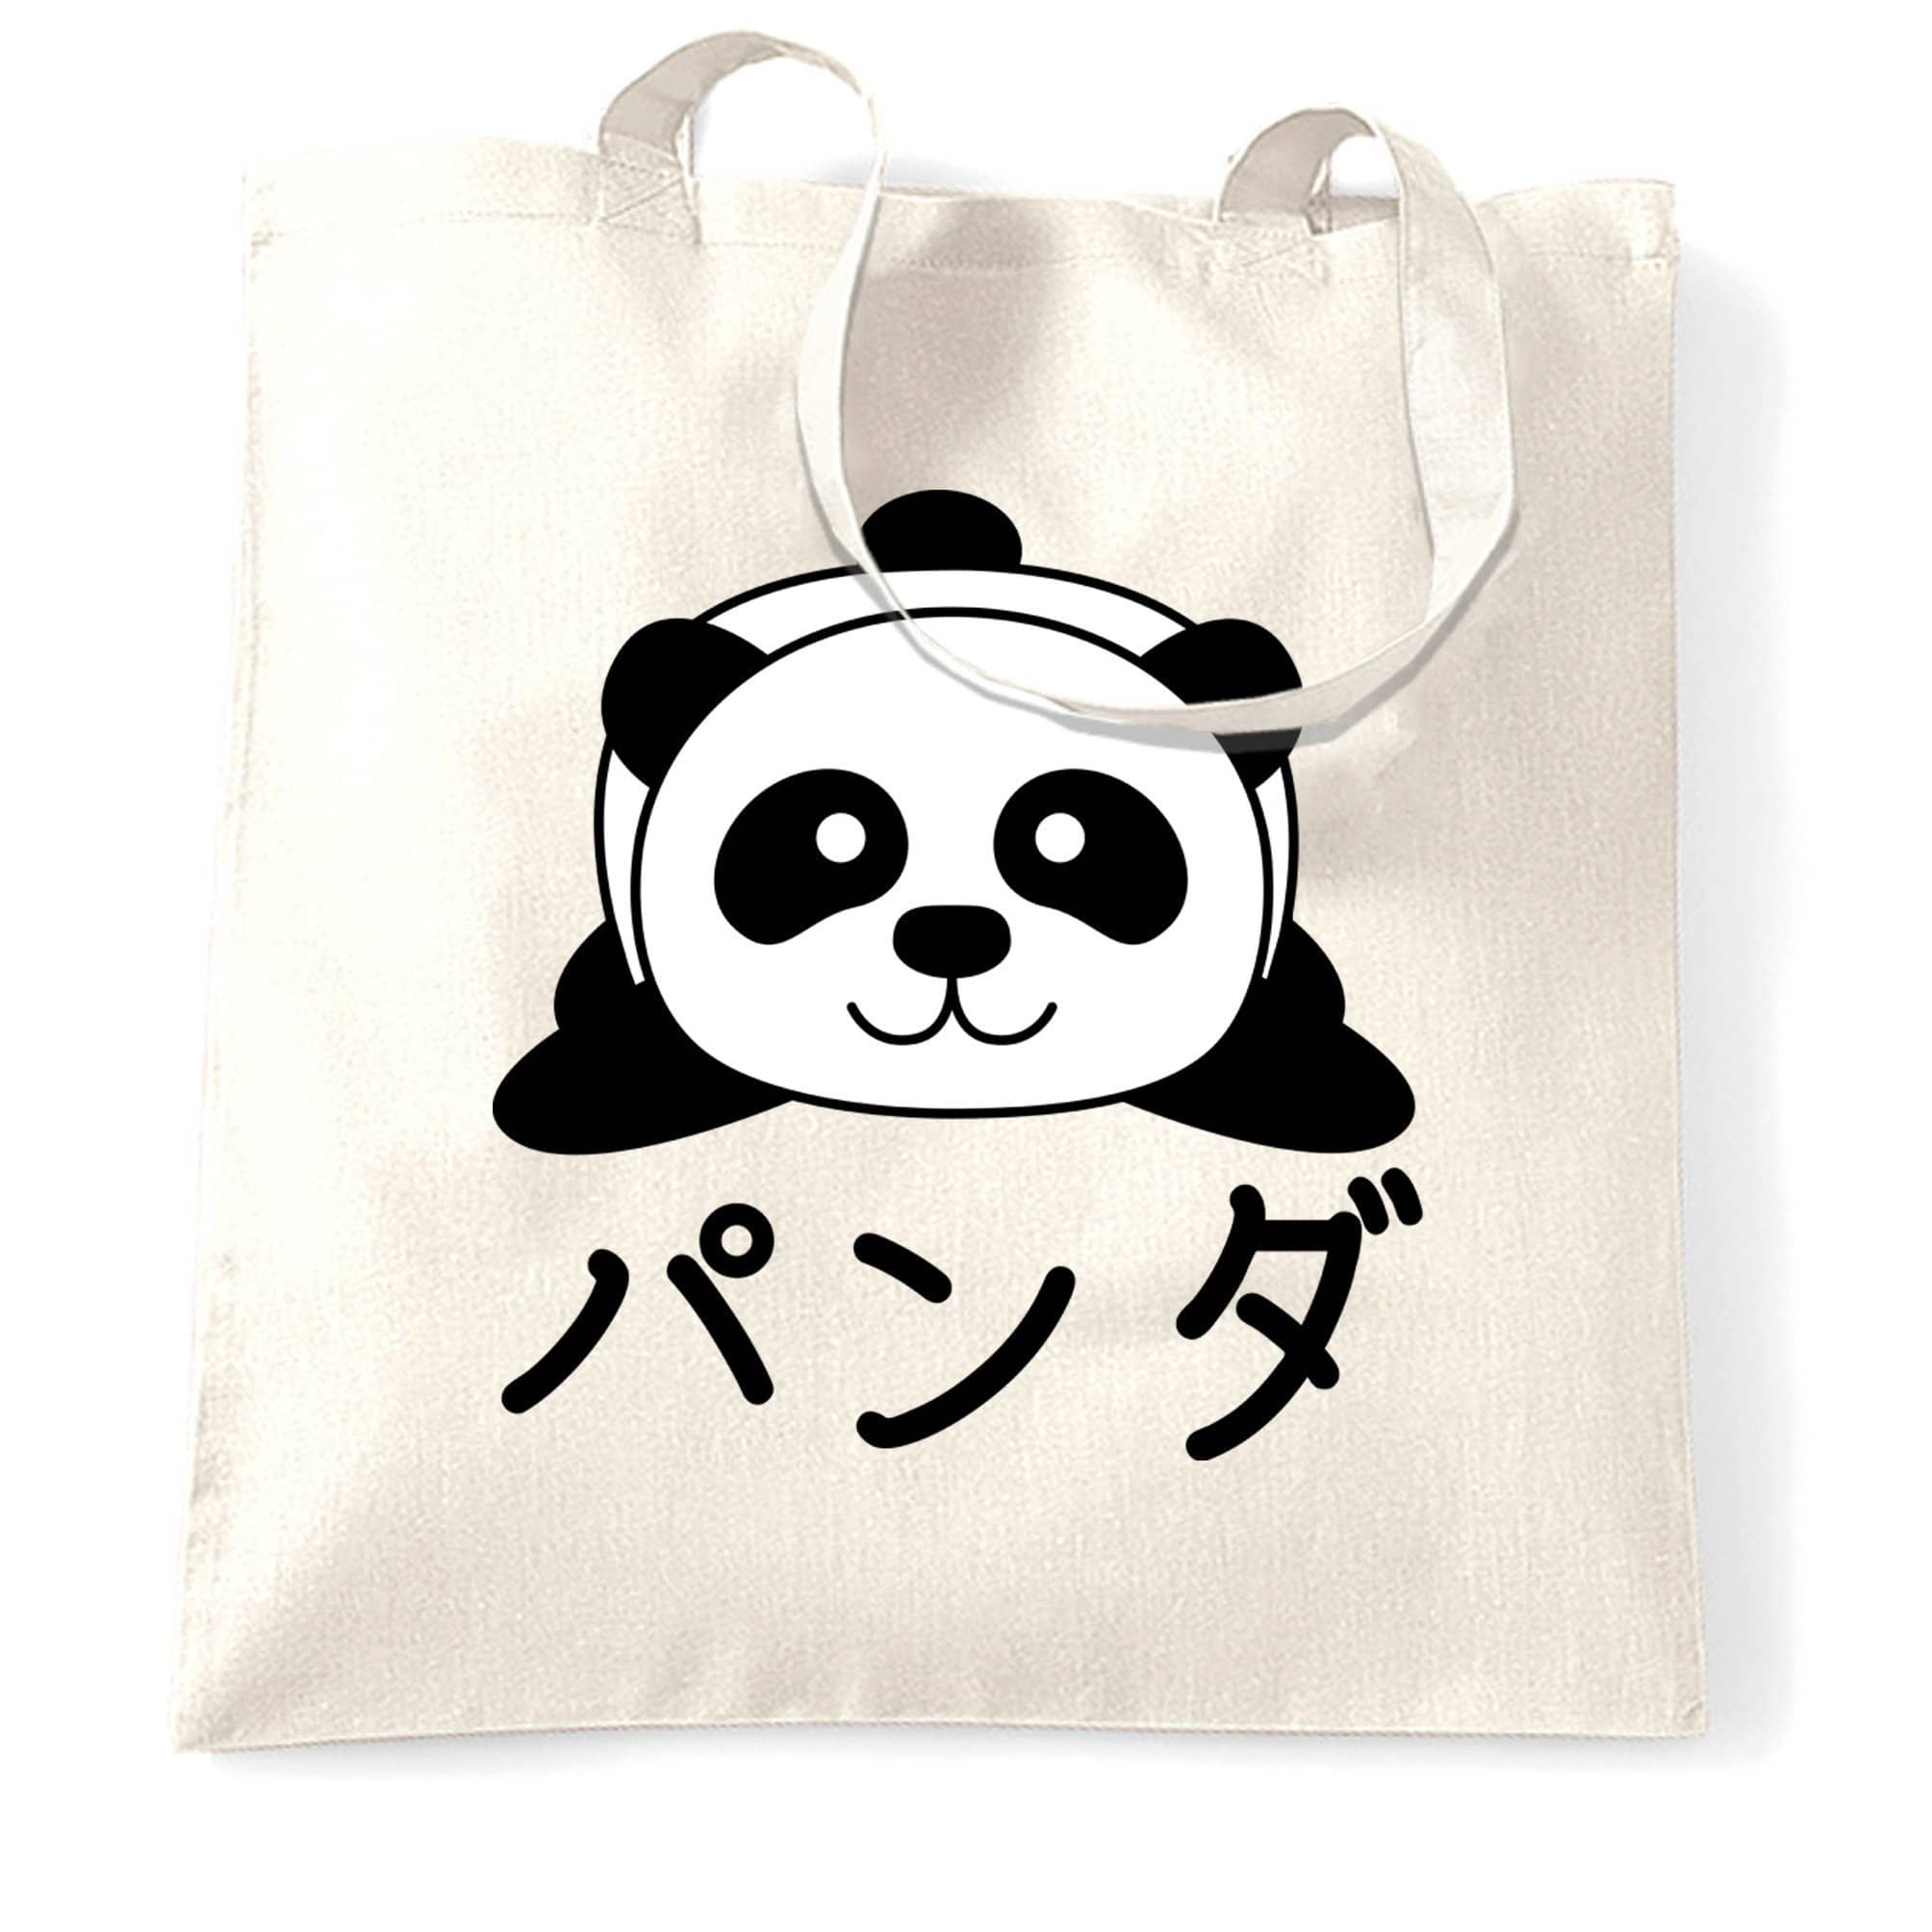 Cute Tote Bag Japanese Baby Panda With Text